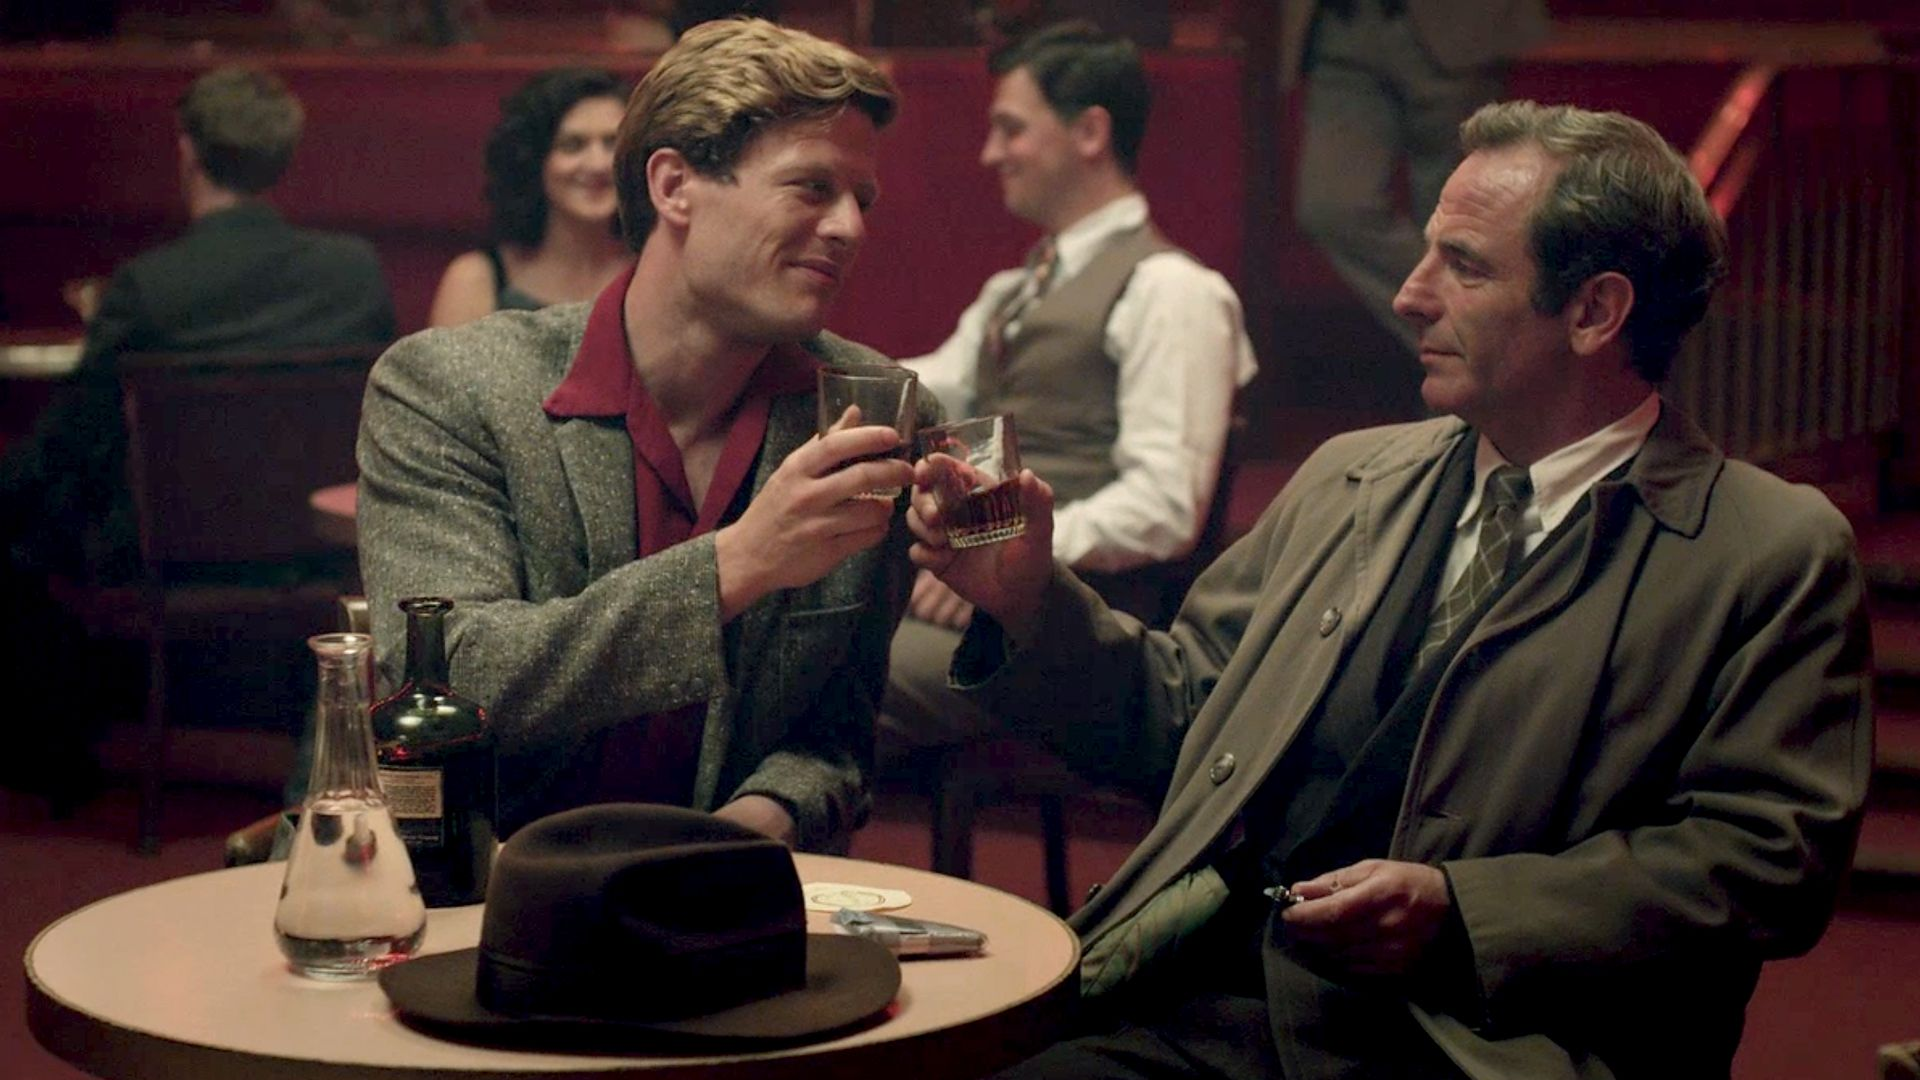 Grantchester, Season 1 | Episode 5, Episodes, No one loves me